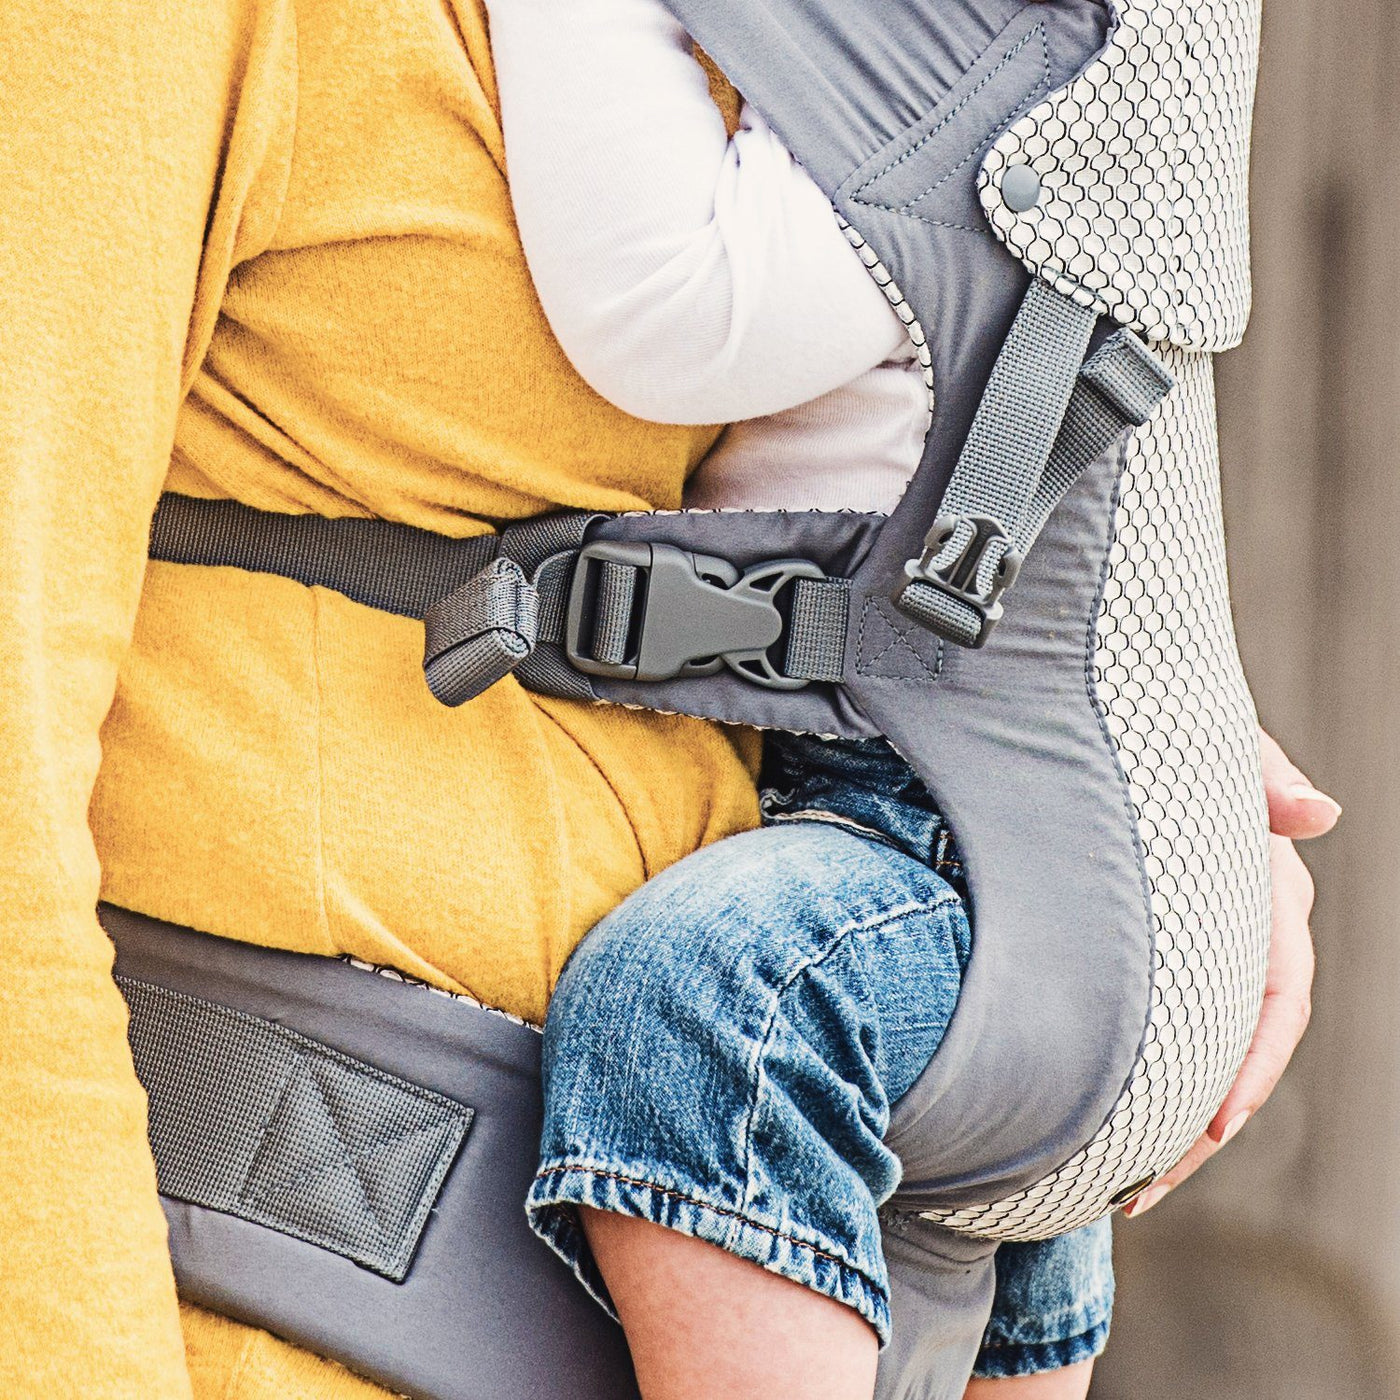 Beco Gemini Baby Carrier - best baby carrier for dads and petite moms.